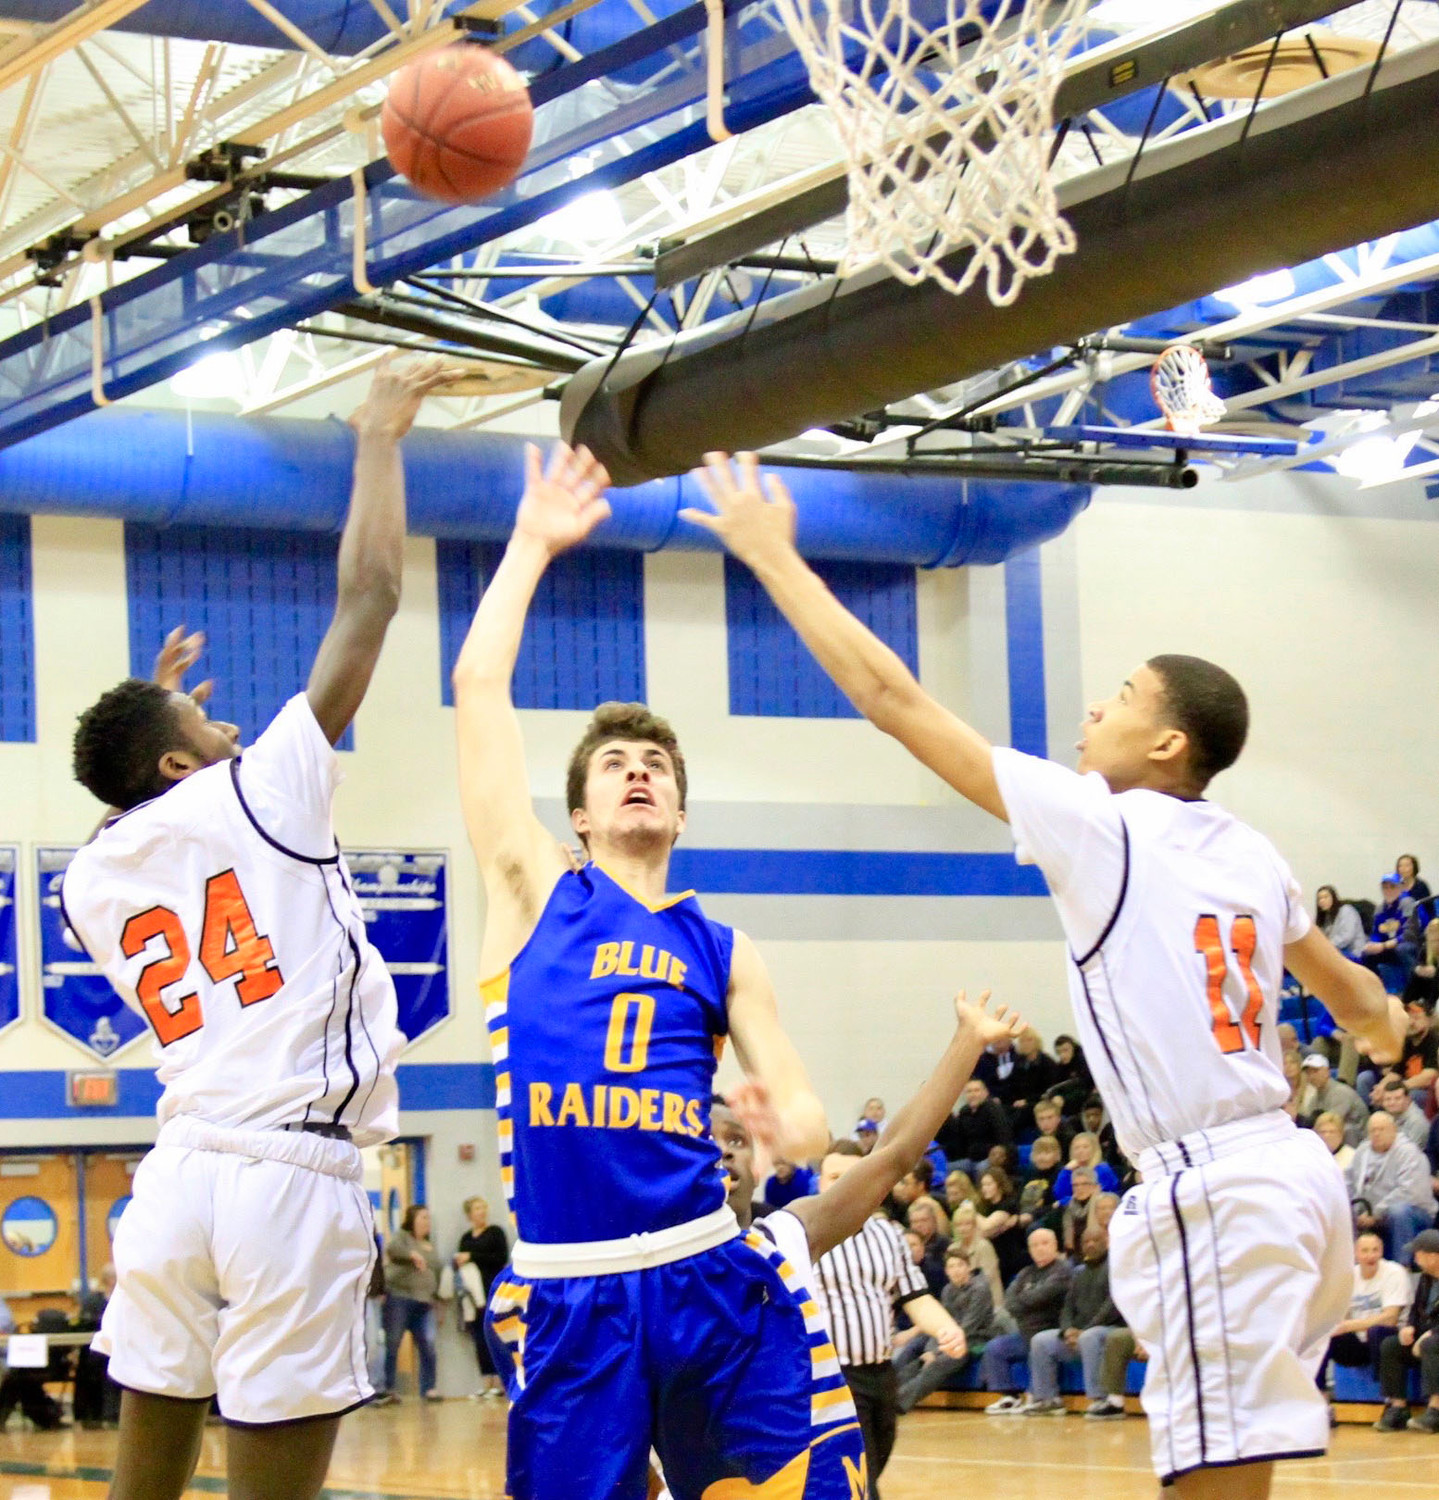 Ryan Hughes puts up a shot during Middletown's 47-45 win vs. Overbrook in the second round of the 4A state playoffs Tuesday night at Garden Spot High School.